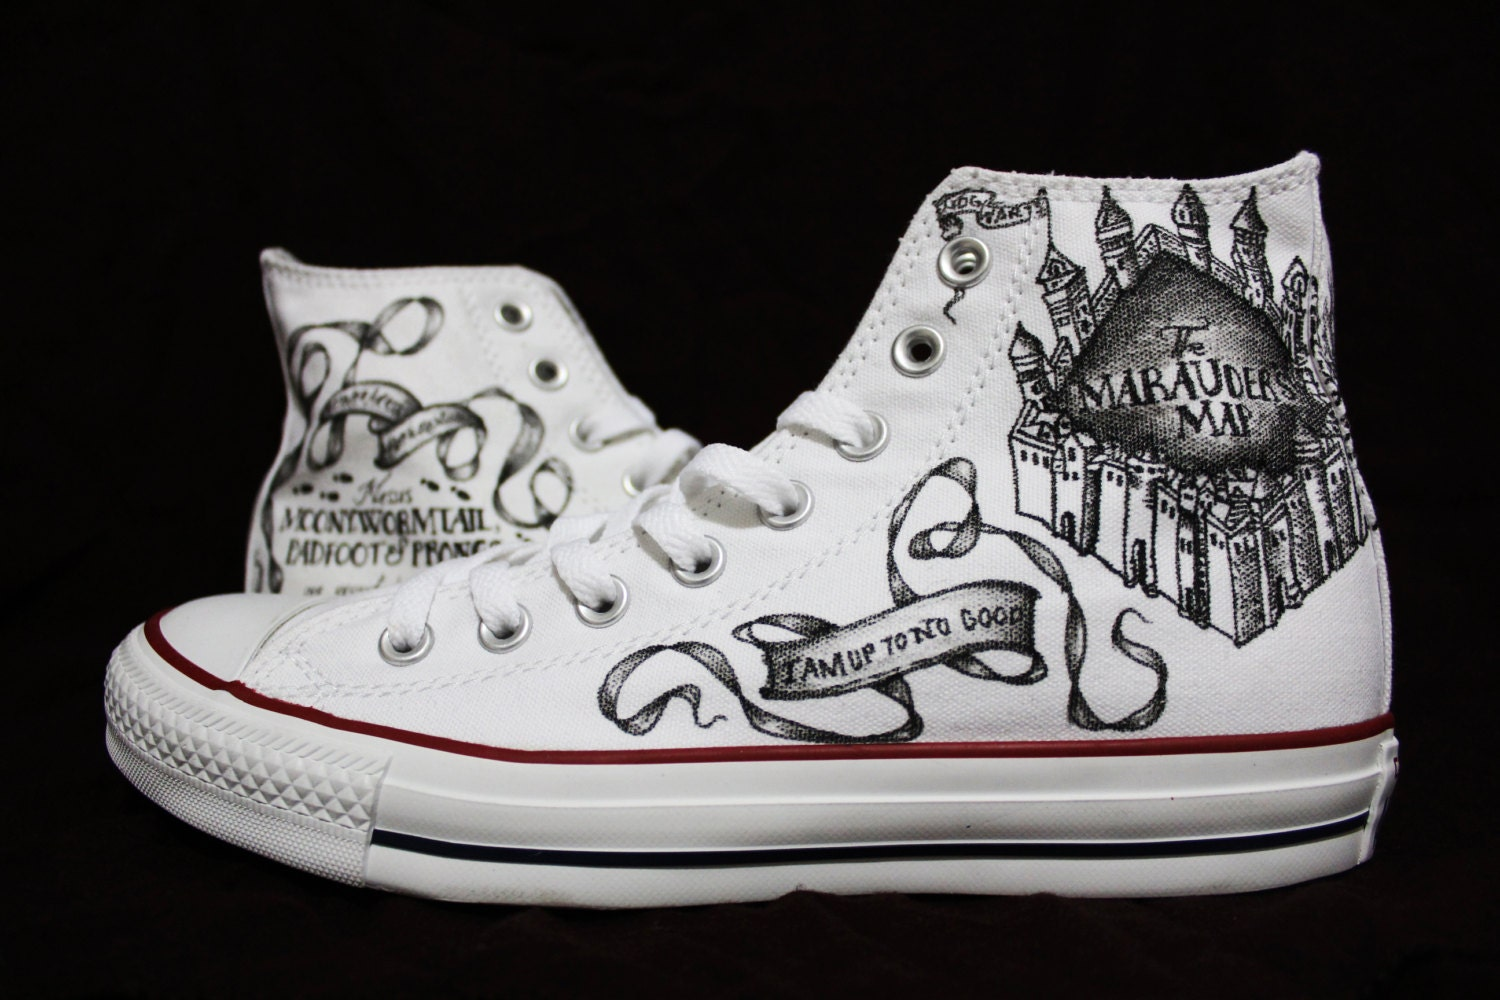 Converse Marauders Map Harry Potter Shoes By Embeditarts